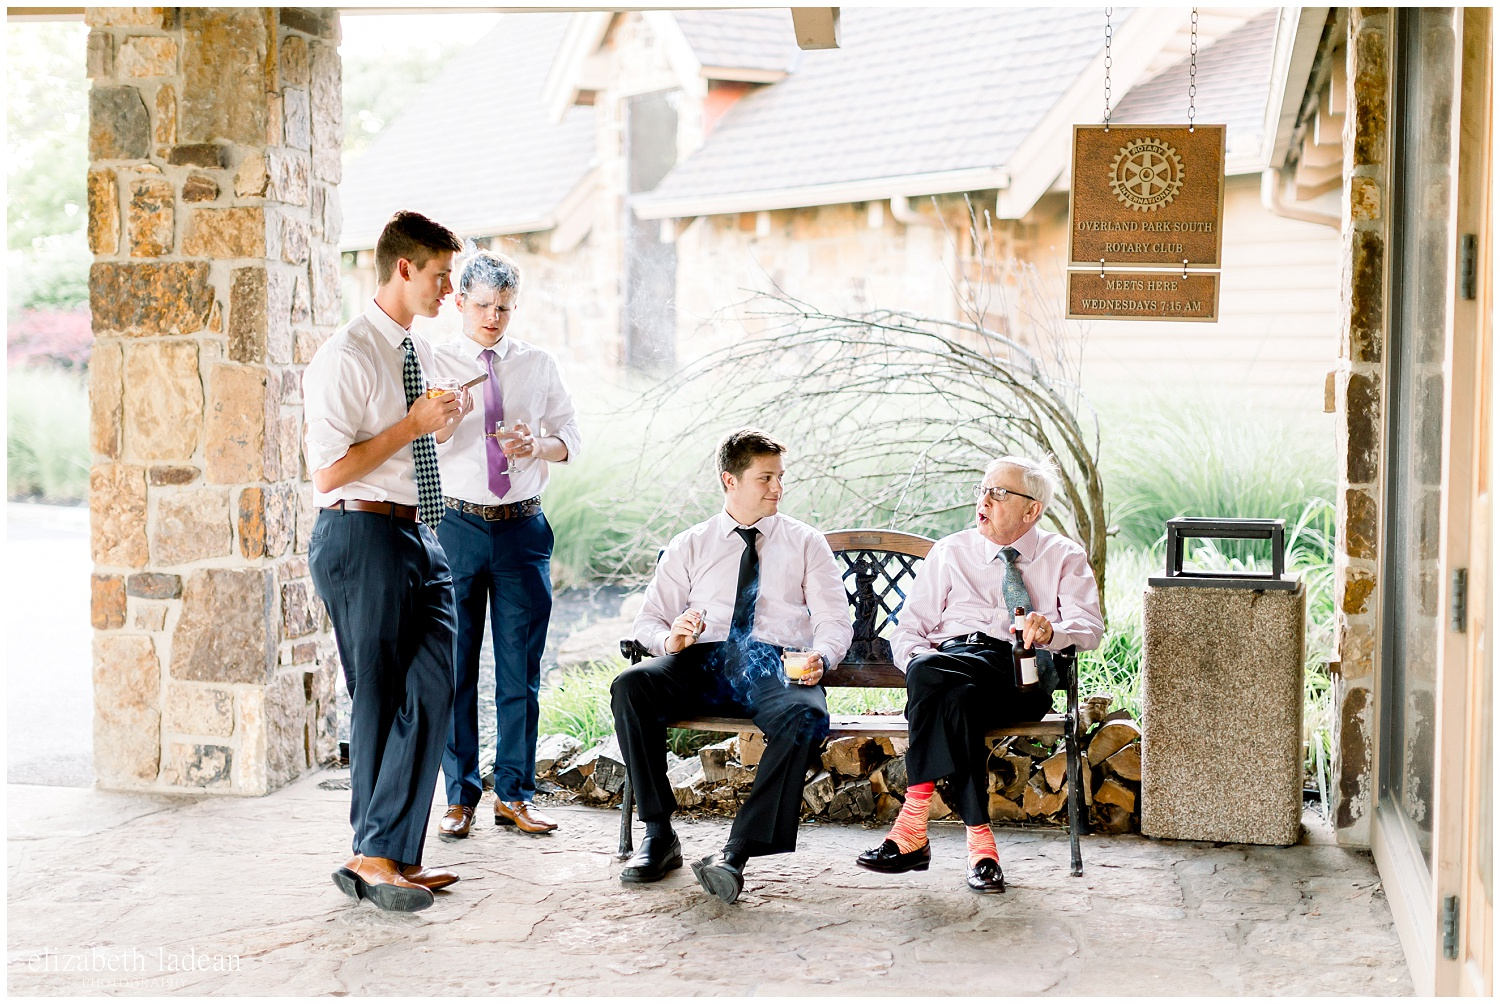 -behind-the-scenes-of-a-wedding-photographer-2018-elizabeth-ladean-photography-photo_3473.jpg